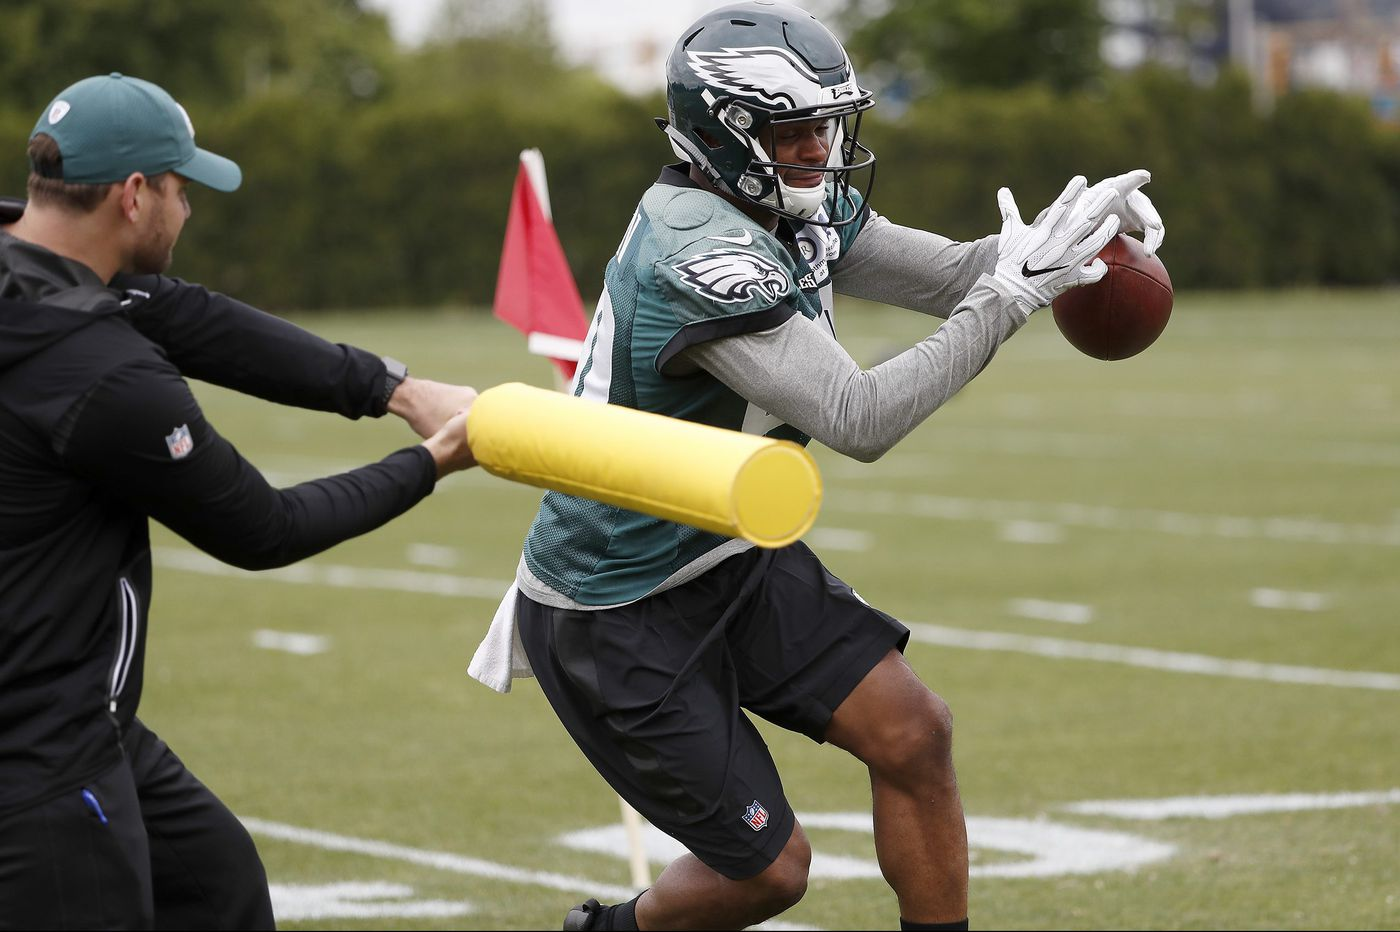 Real, live hitting at Eagles training camp ups the risk of injuries